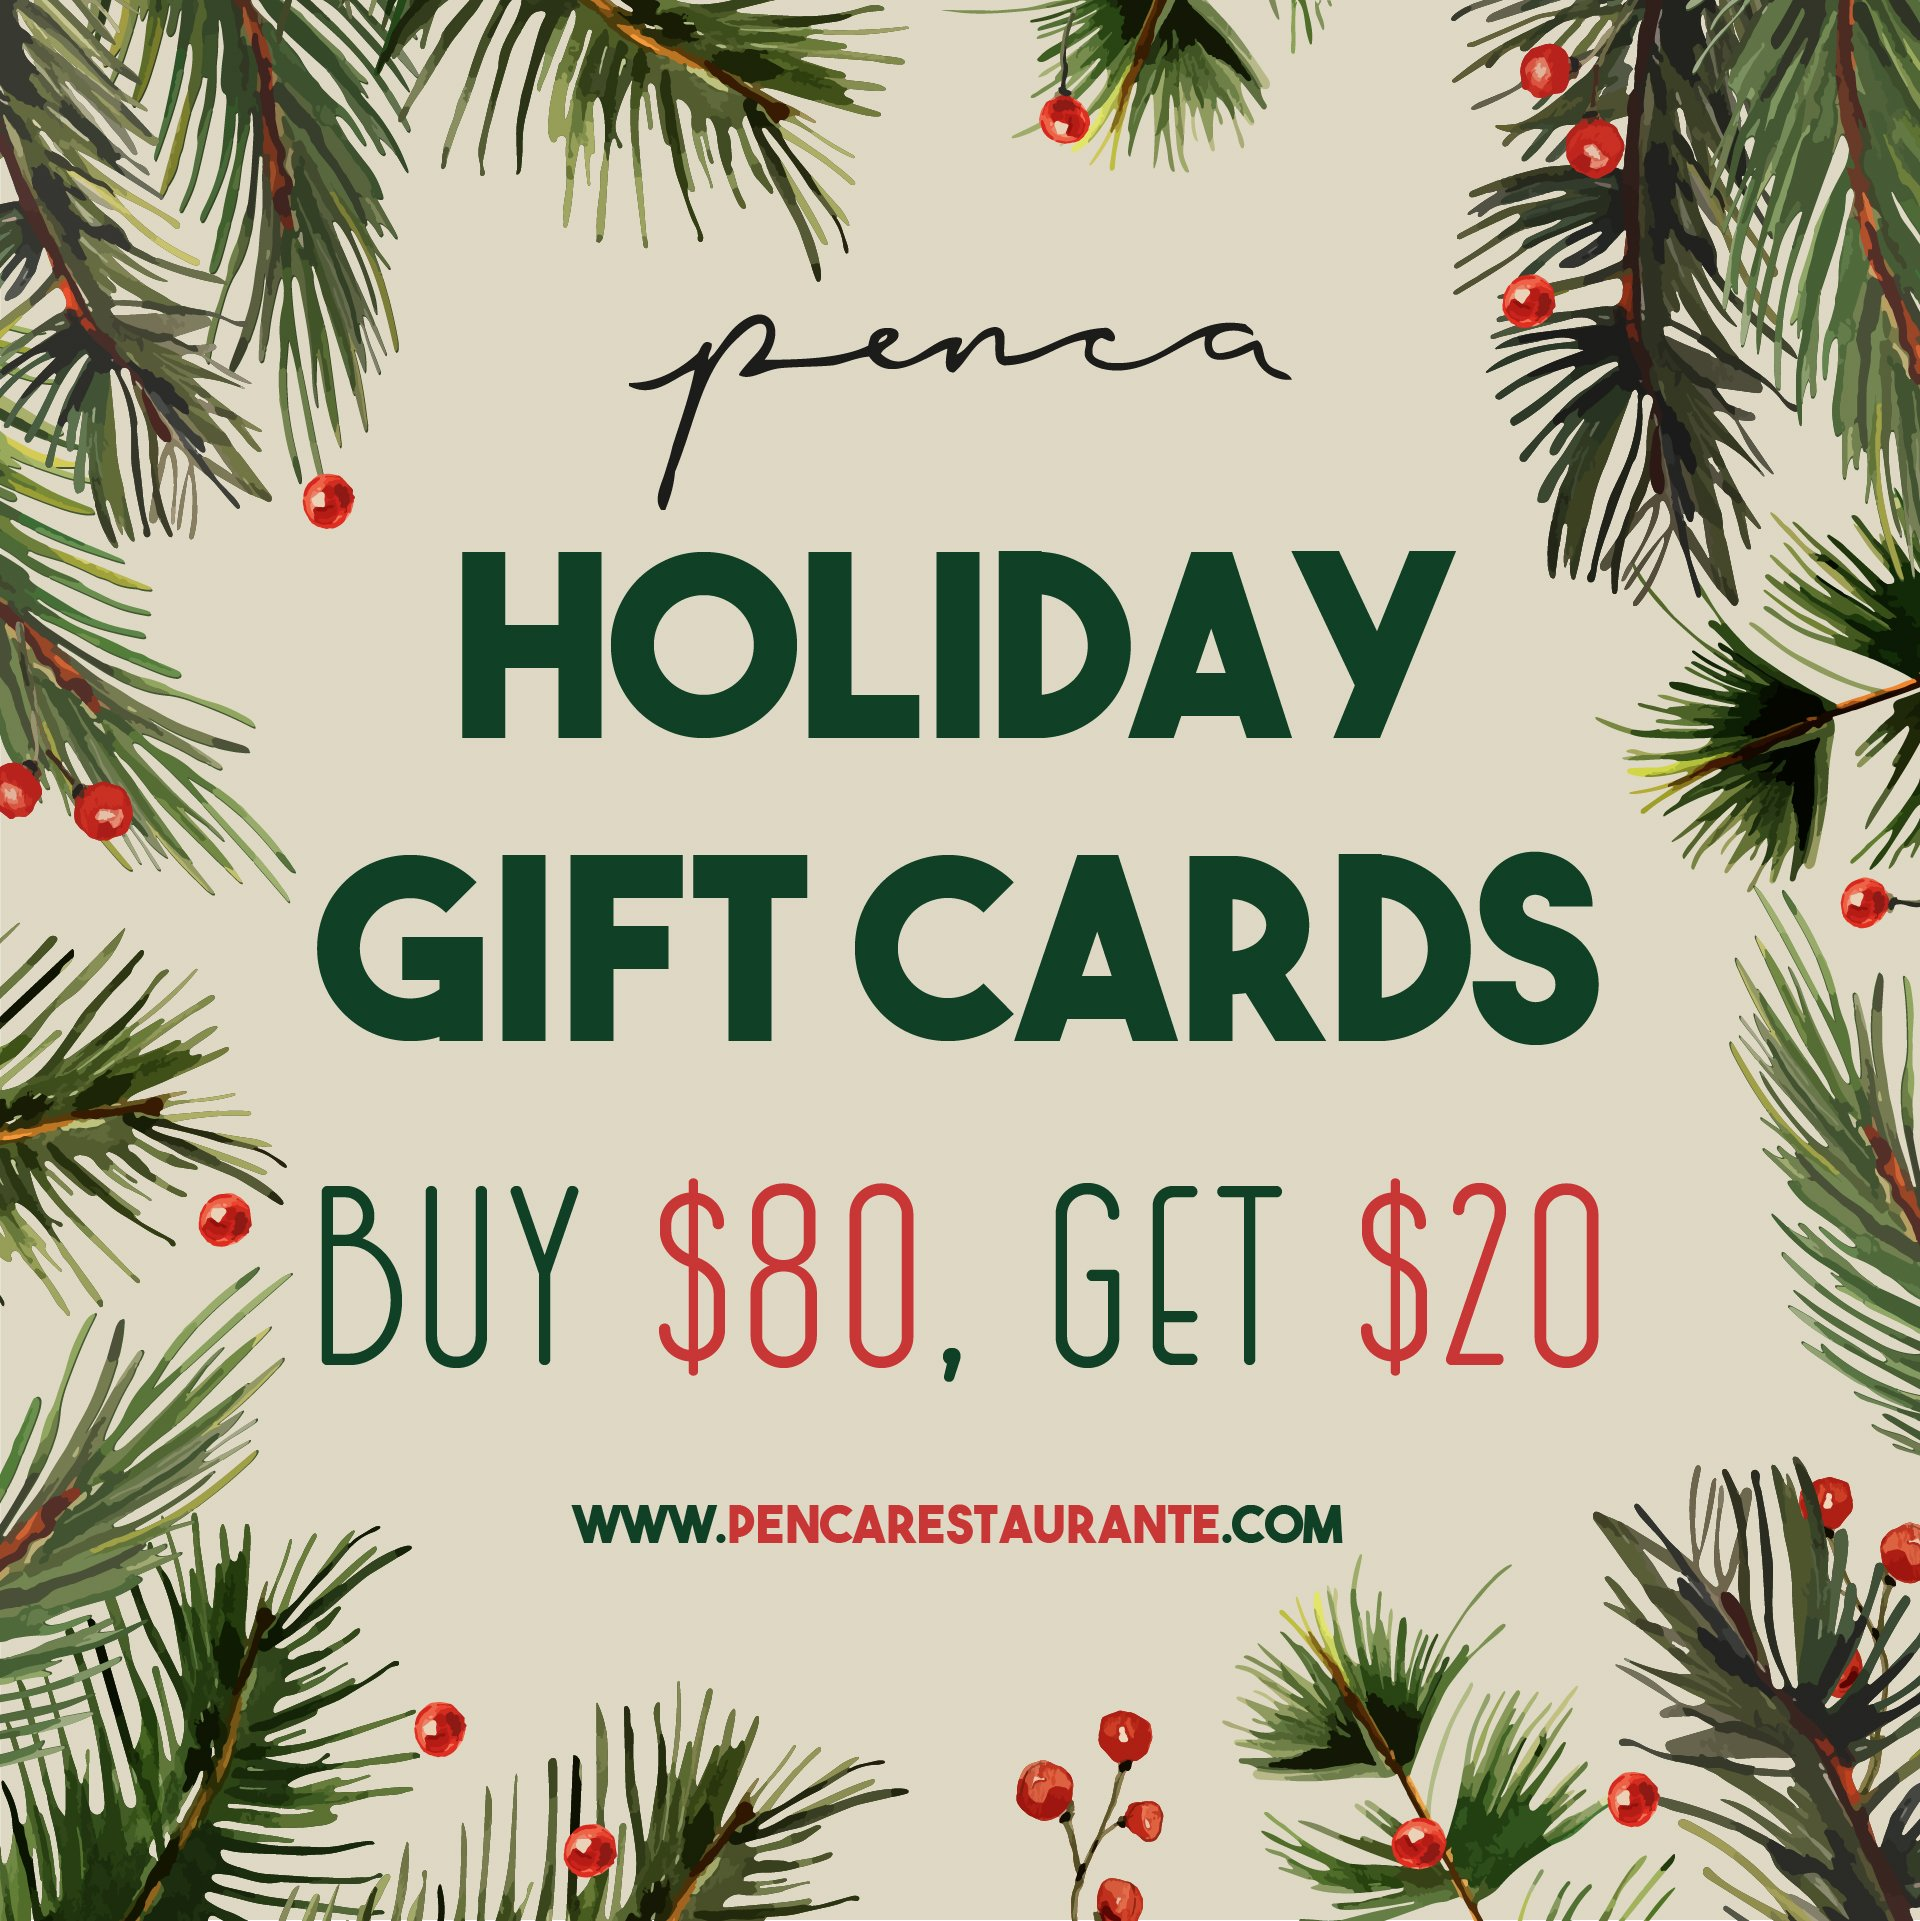 Penca Holiday Gift Card sale